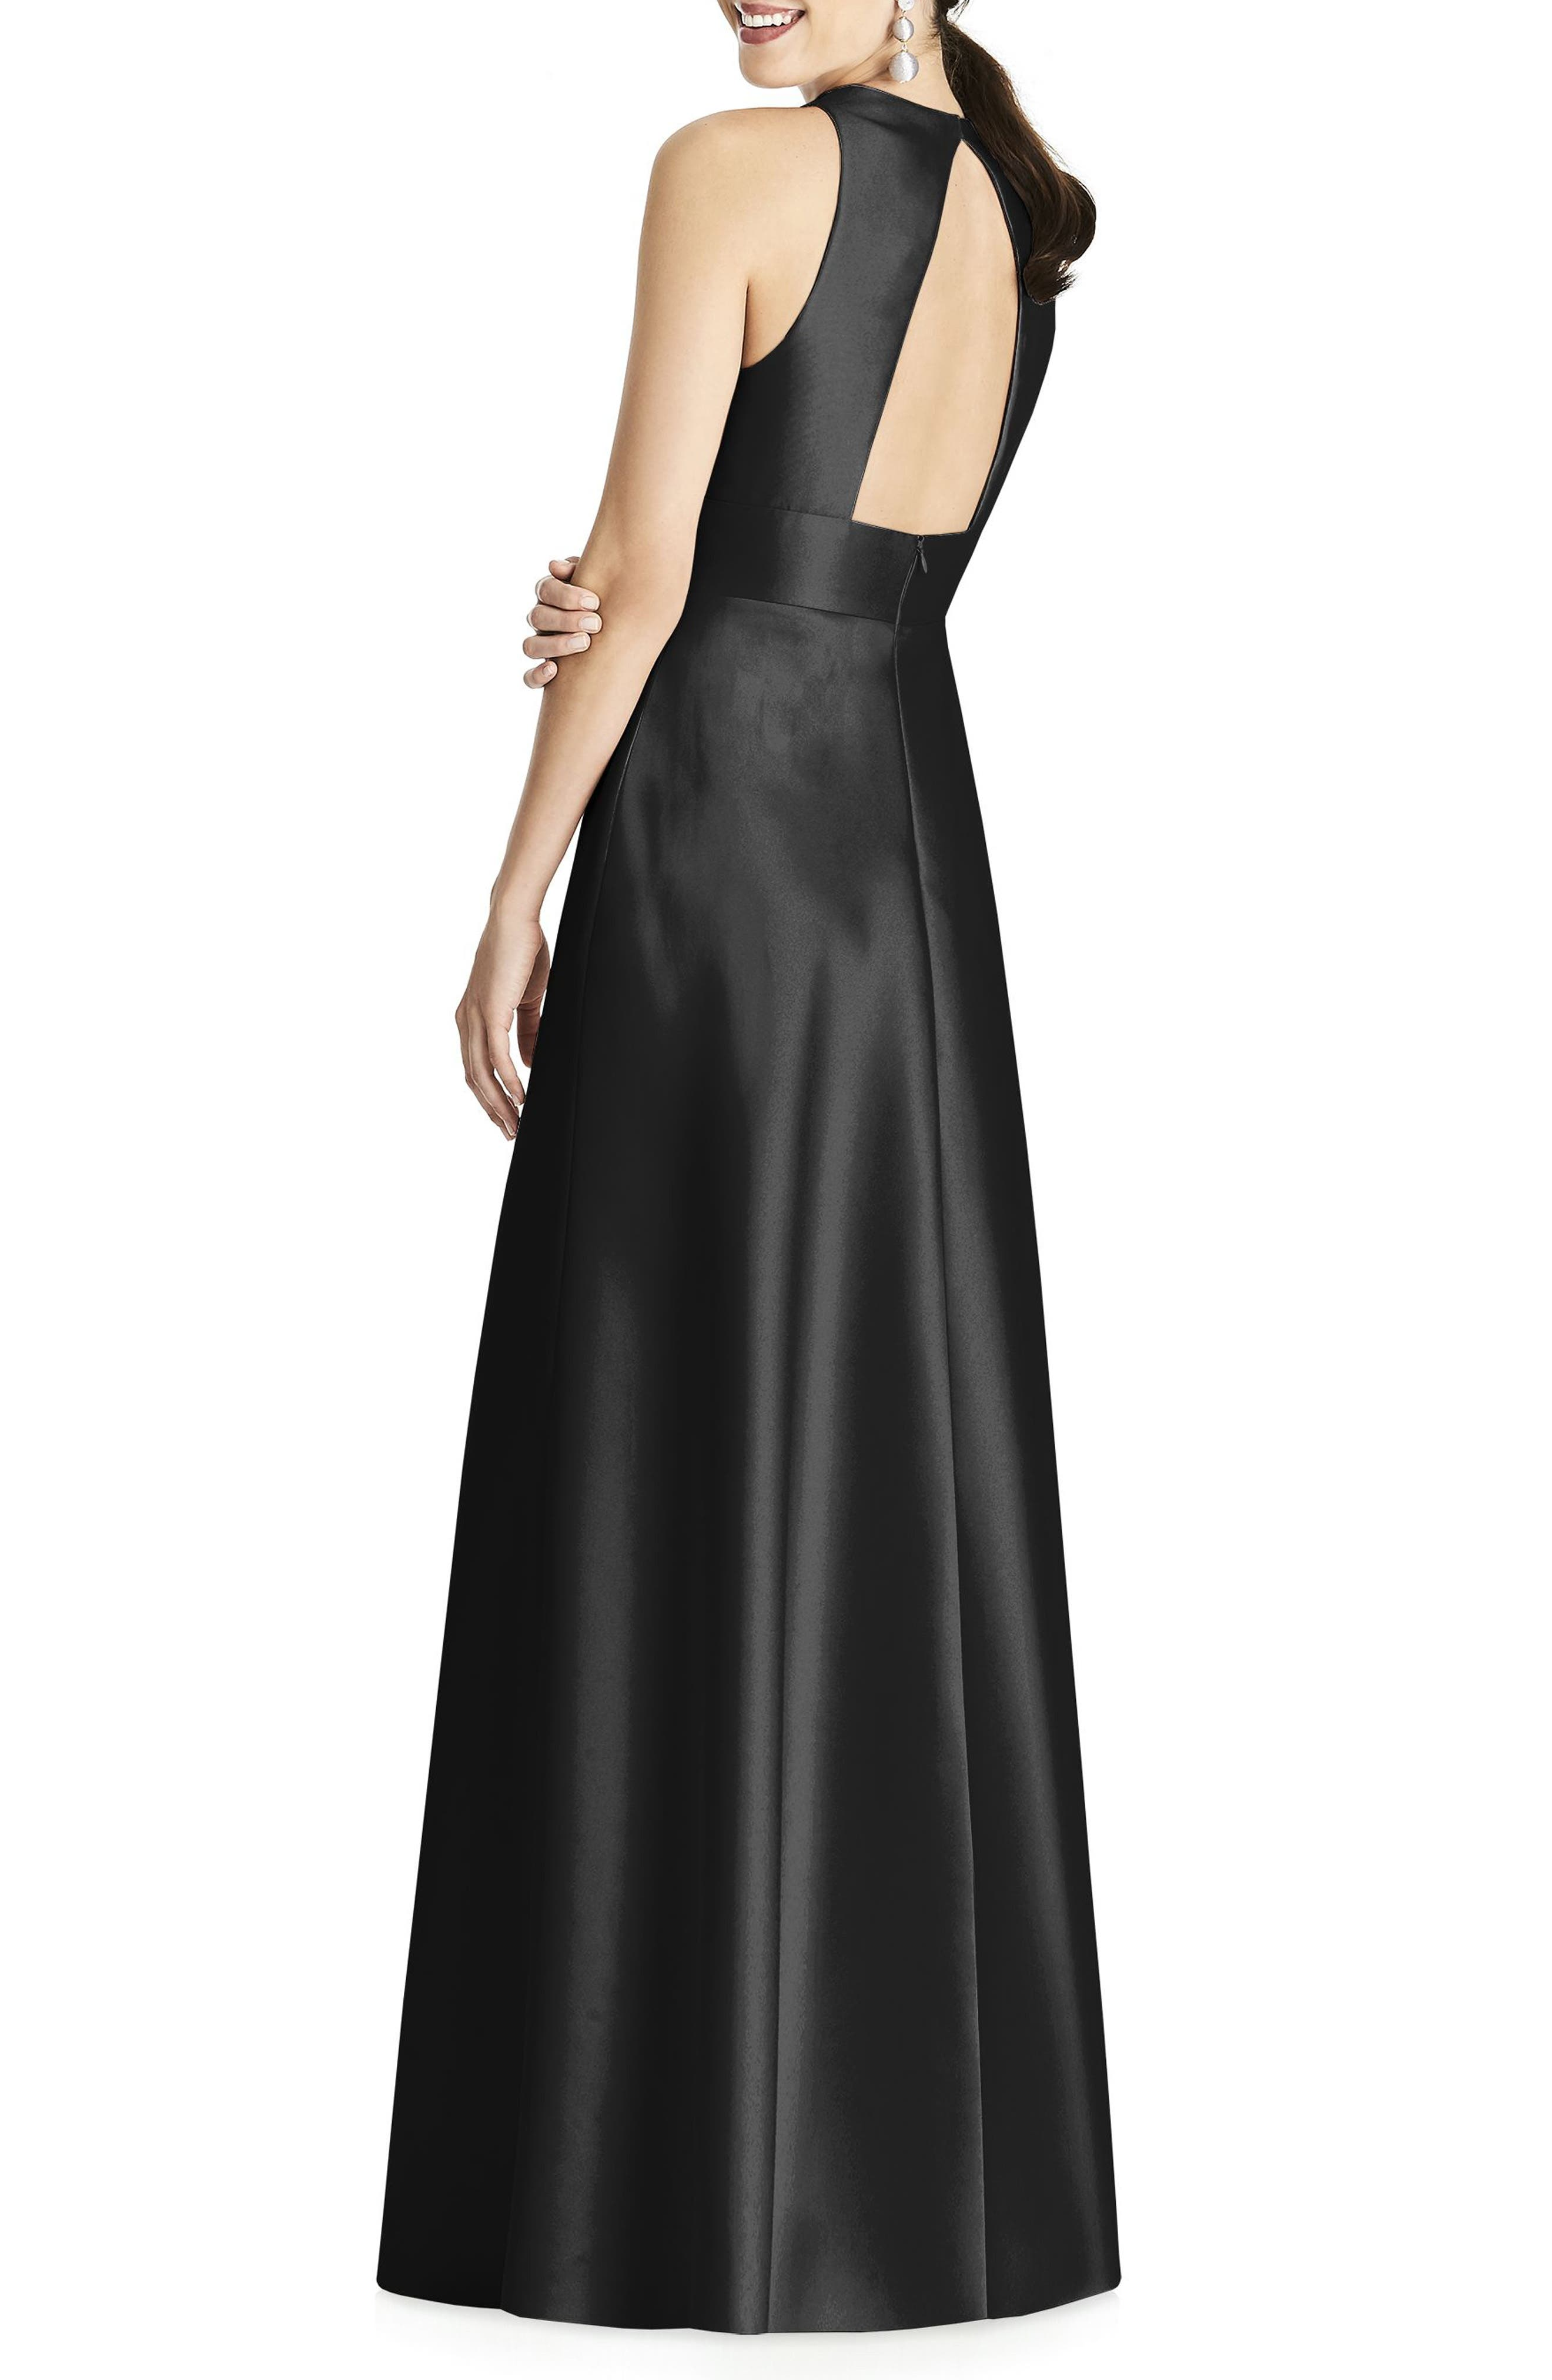 ALFRED SUNG, Sleeveless Sateen Gown, Alternate thumbnail 2, color, BLACK